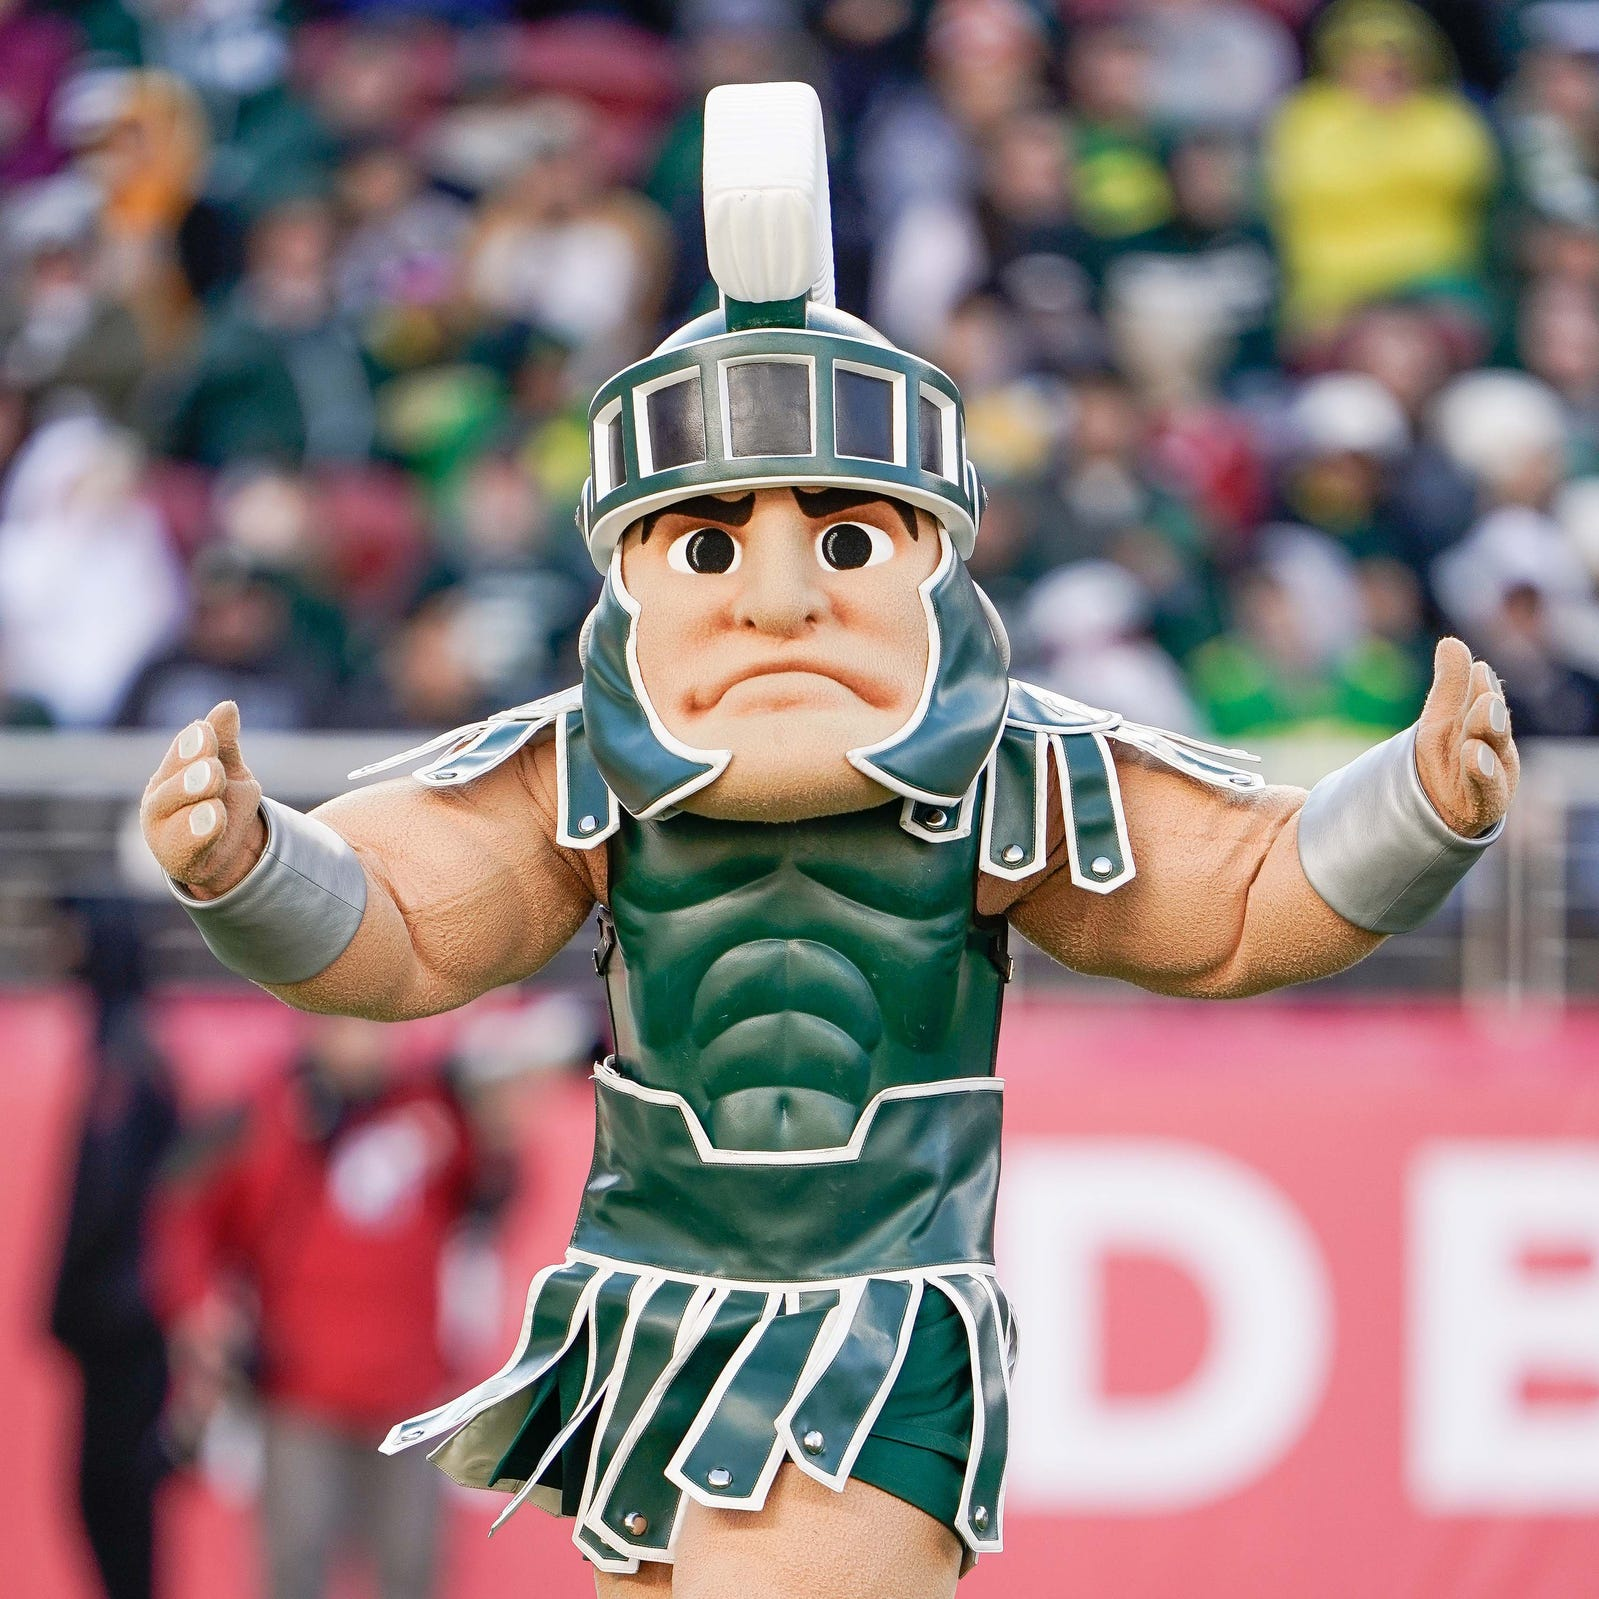 Secret identity of MSU's Original Sparty finally revealed after 30 years